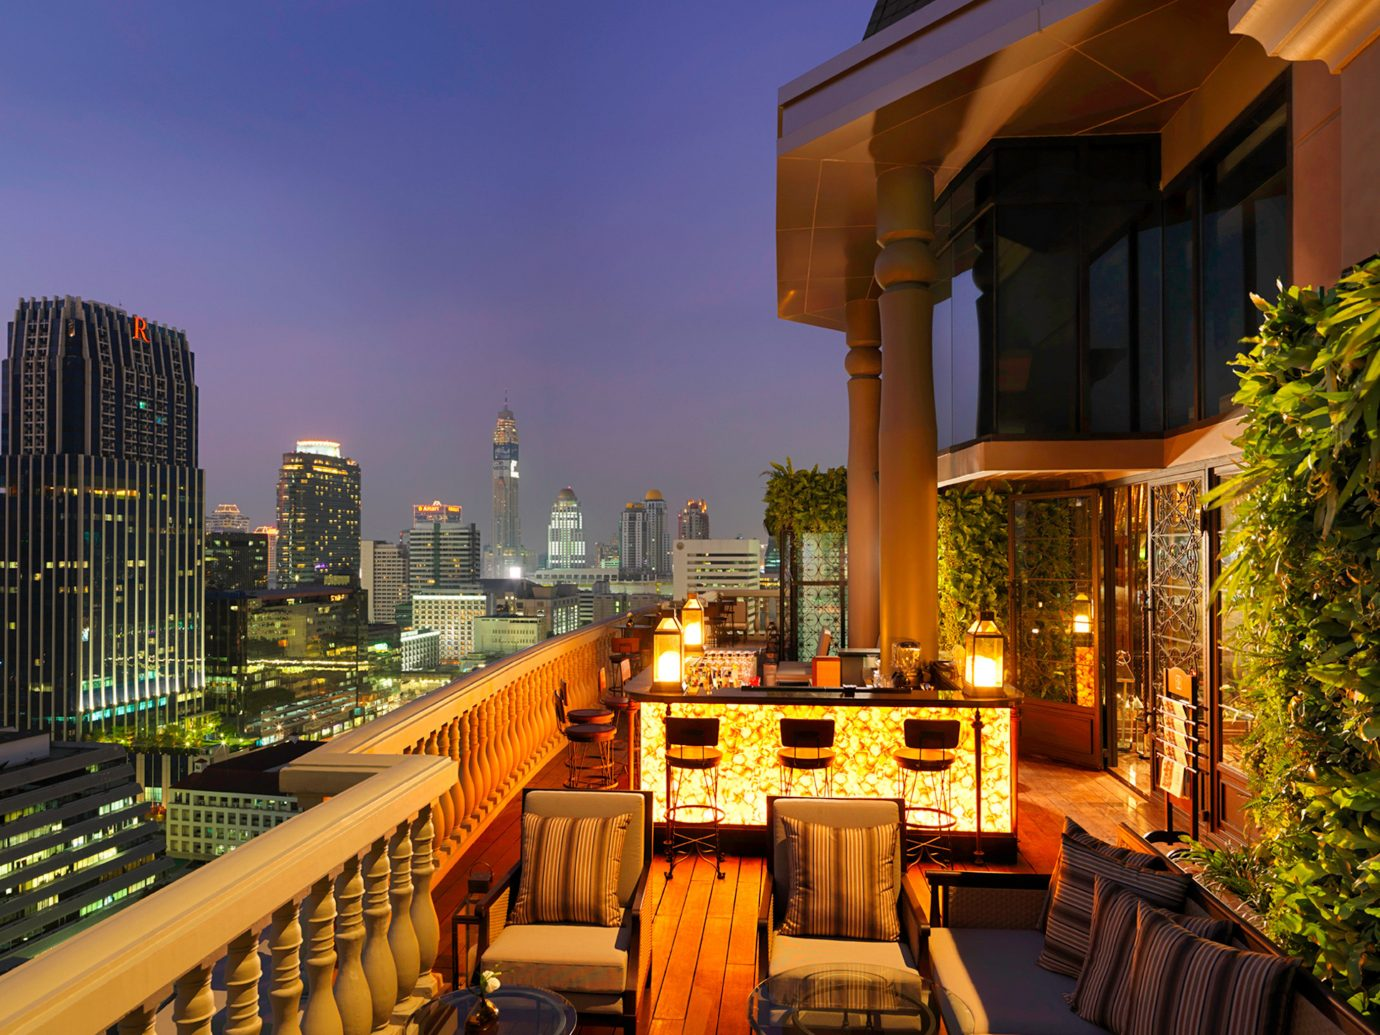 Bar City Drink Elegant Hotels Lounge Nightlife Rooftop Scenic views Shop outdoor metropolitan area building night human settlement urban area neighbourhood cityscape Architecture metropolis Downtown evening residential area estate condominium